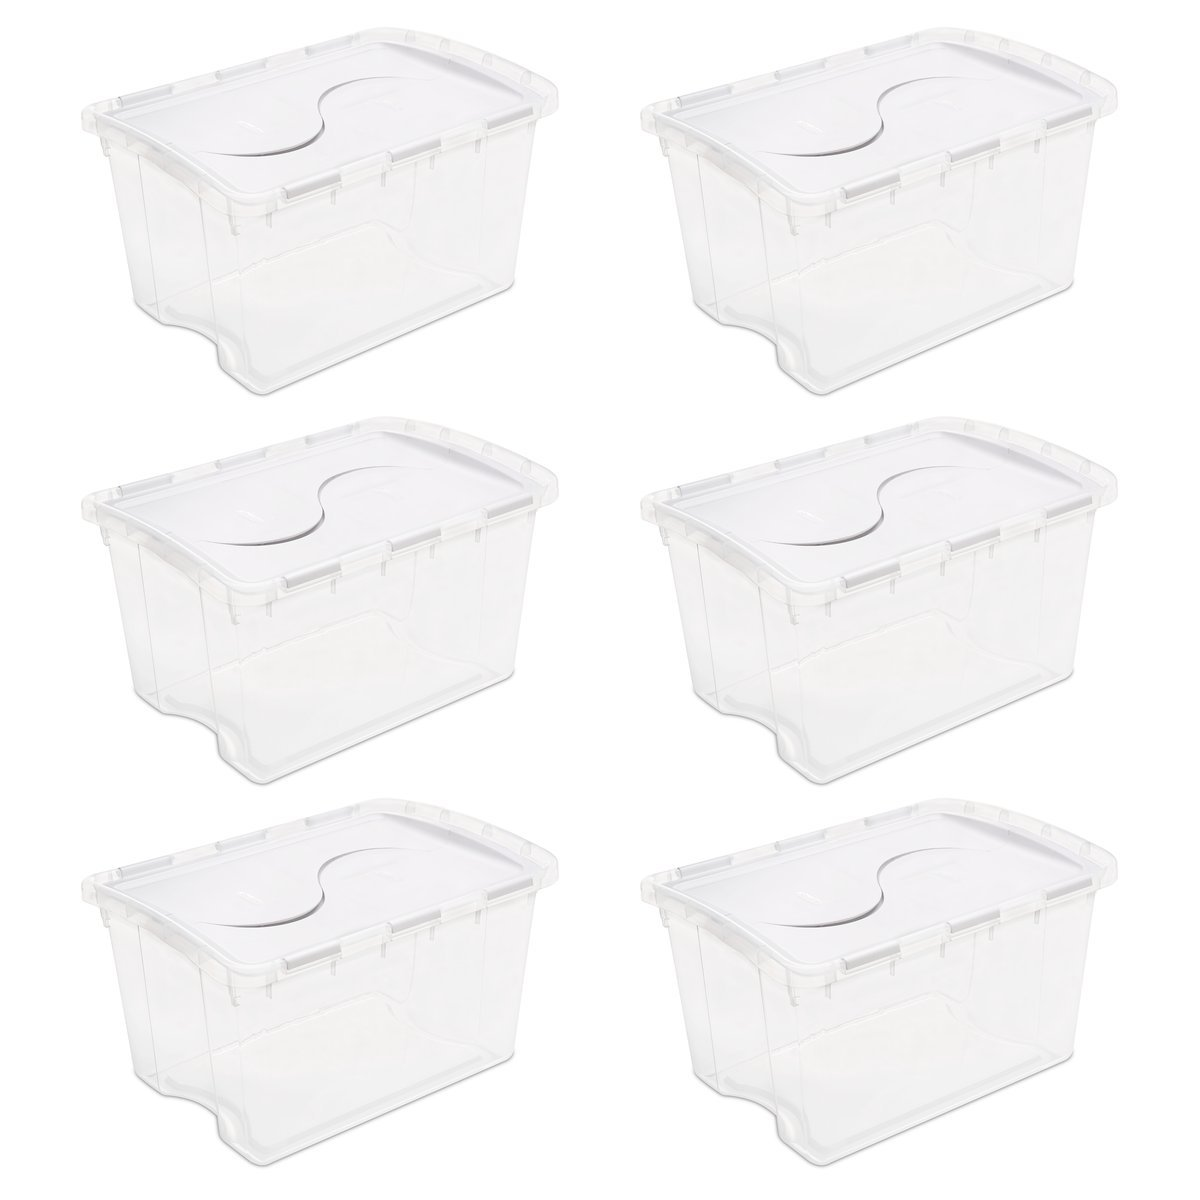 Sterilite 19148006 48 Quart/45 Liter Hinged Lid Storage Box, Clear with White Lid, 6-Pack